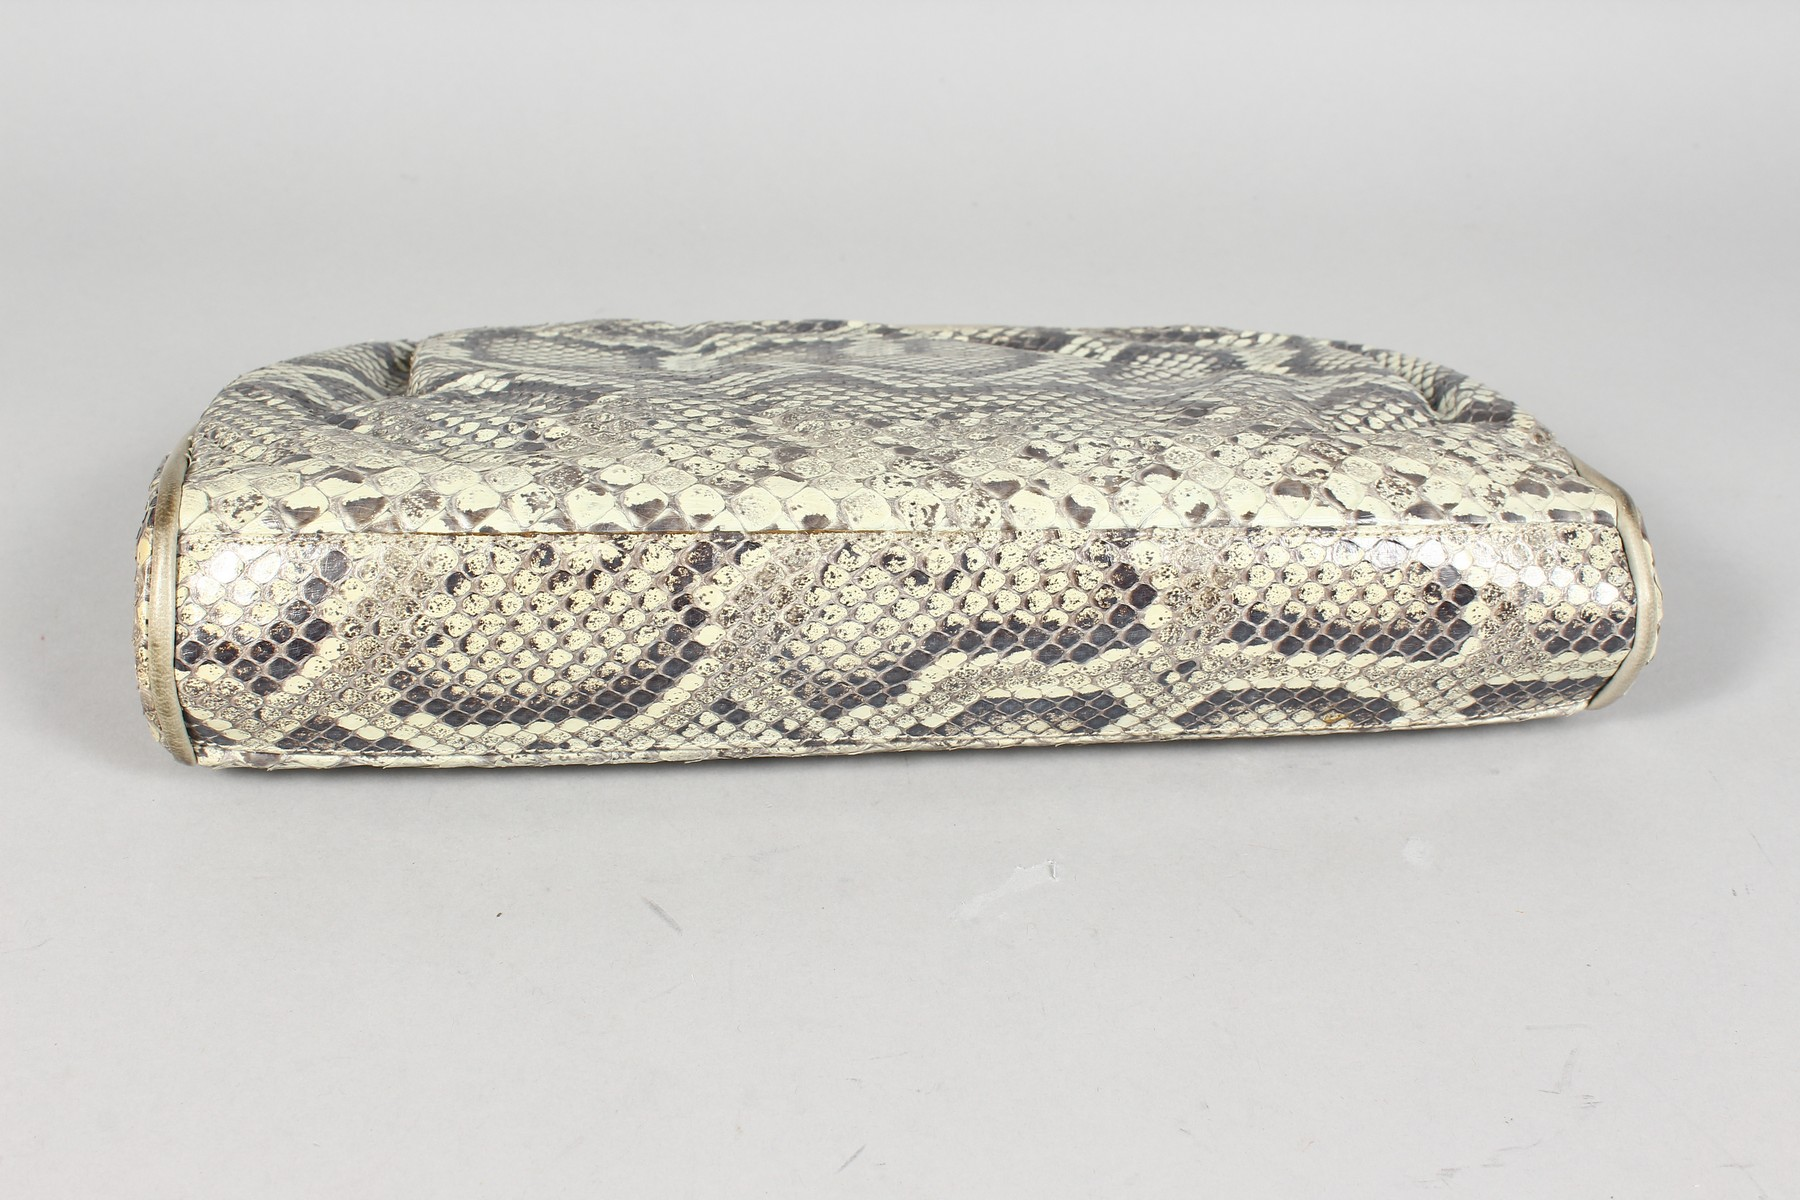 A CHANEL SNAKESKIN BAG with leather interior. Made in Italy. 11ins long. - Image 9 of 9